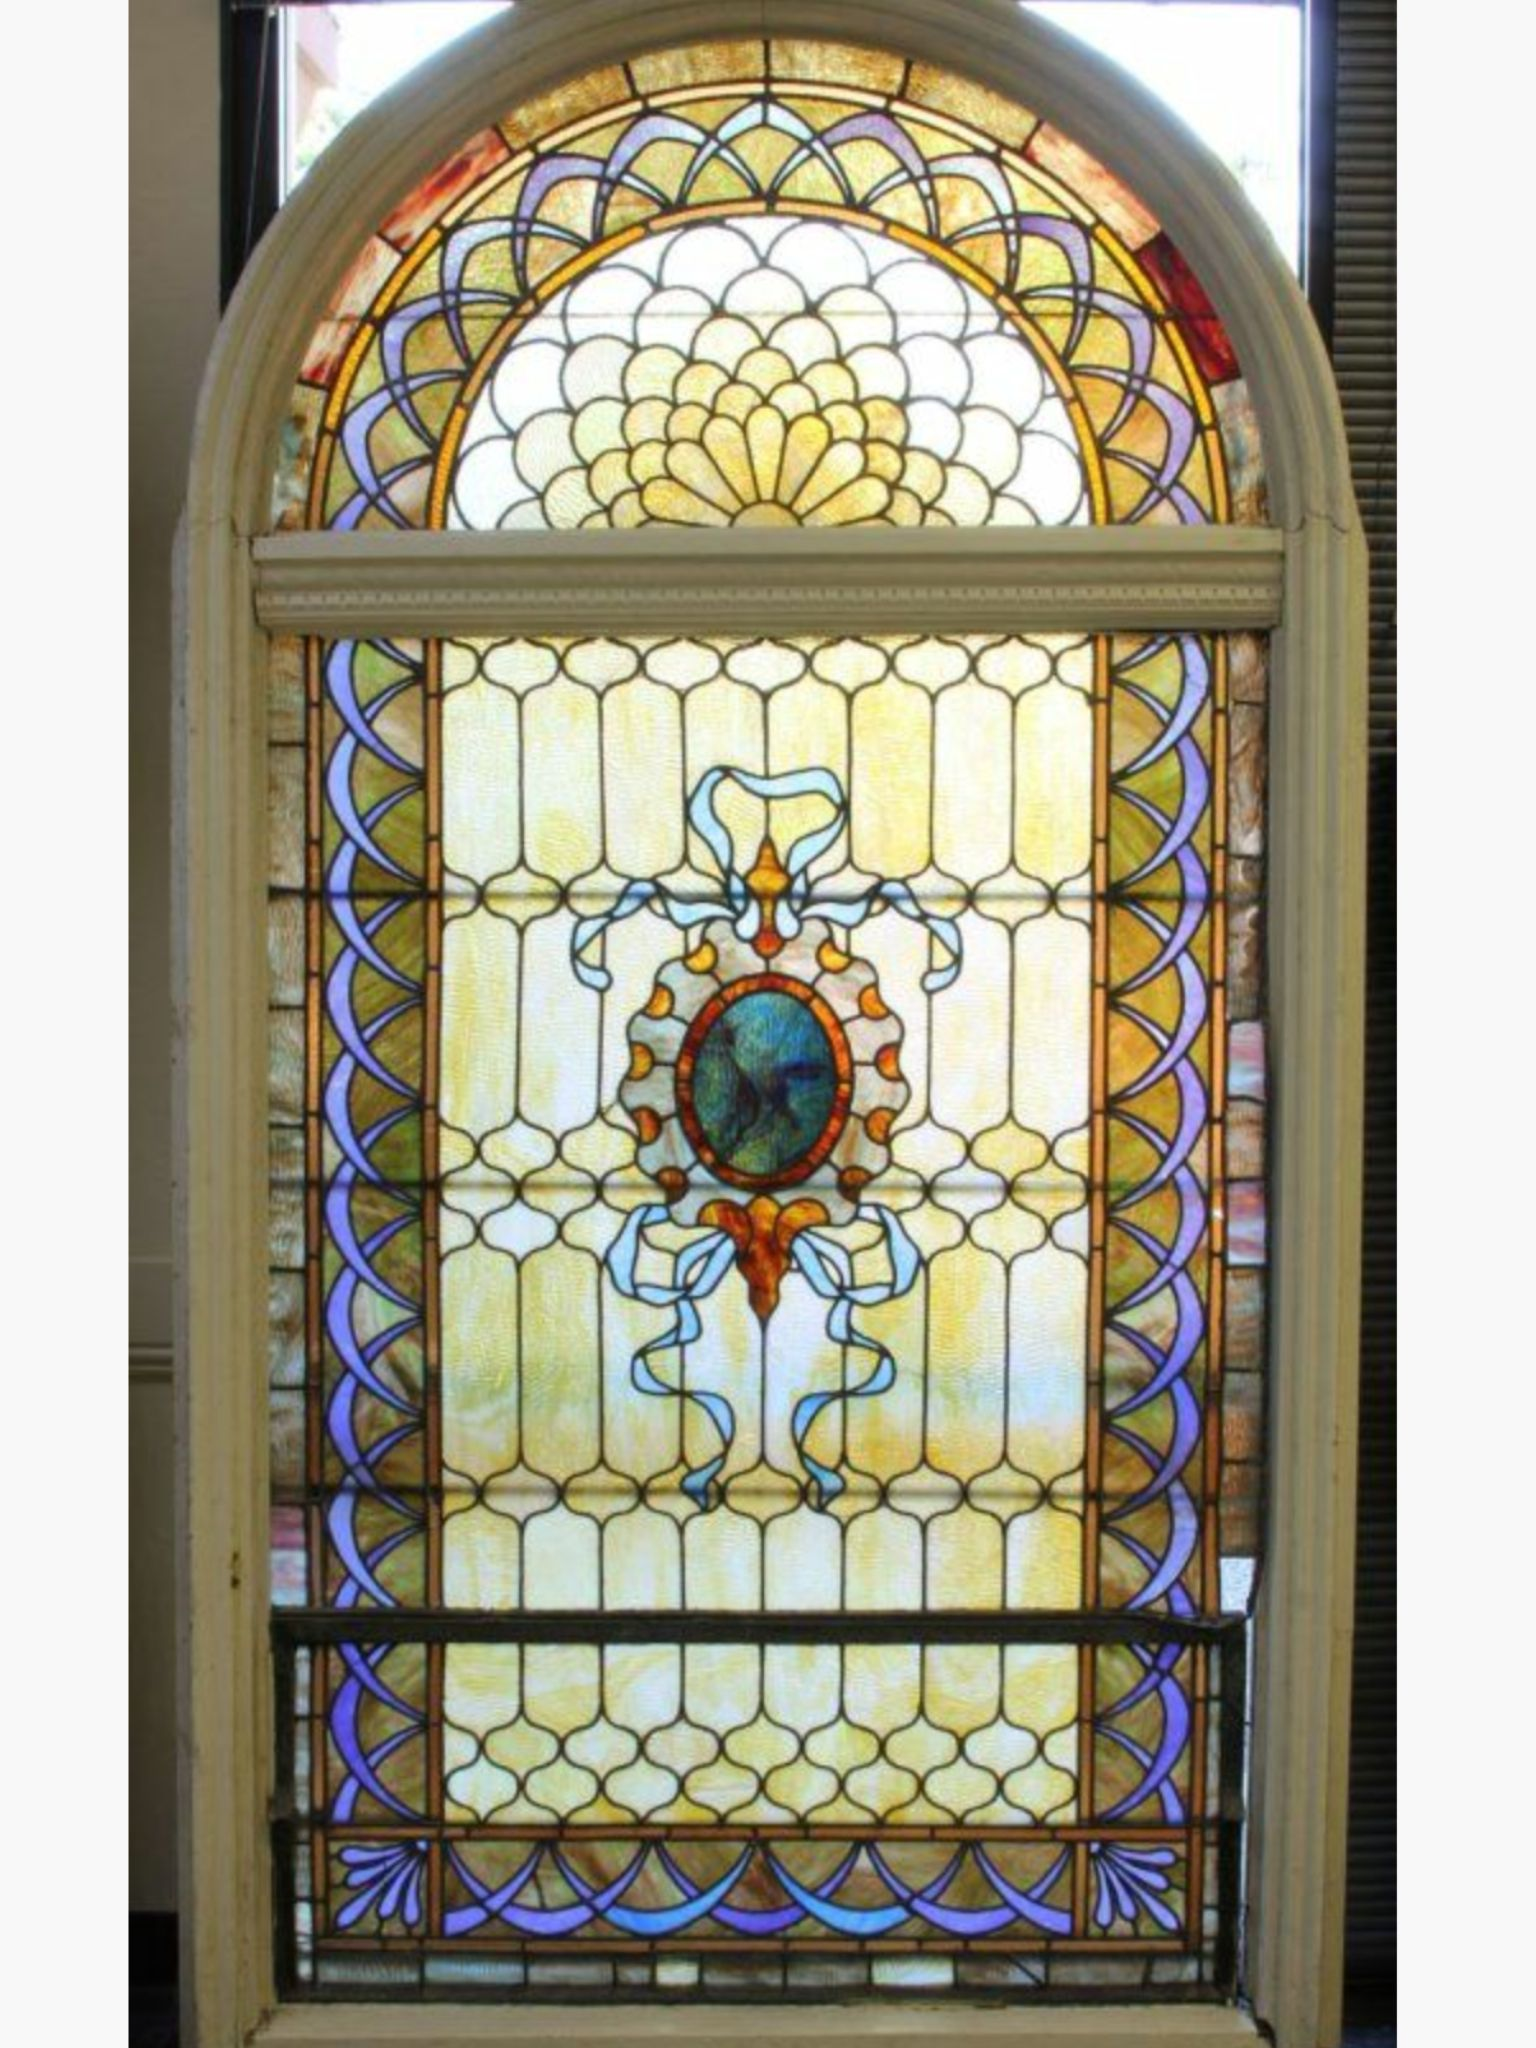 Stain glass Stain glass details